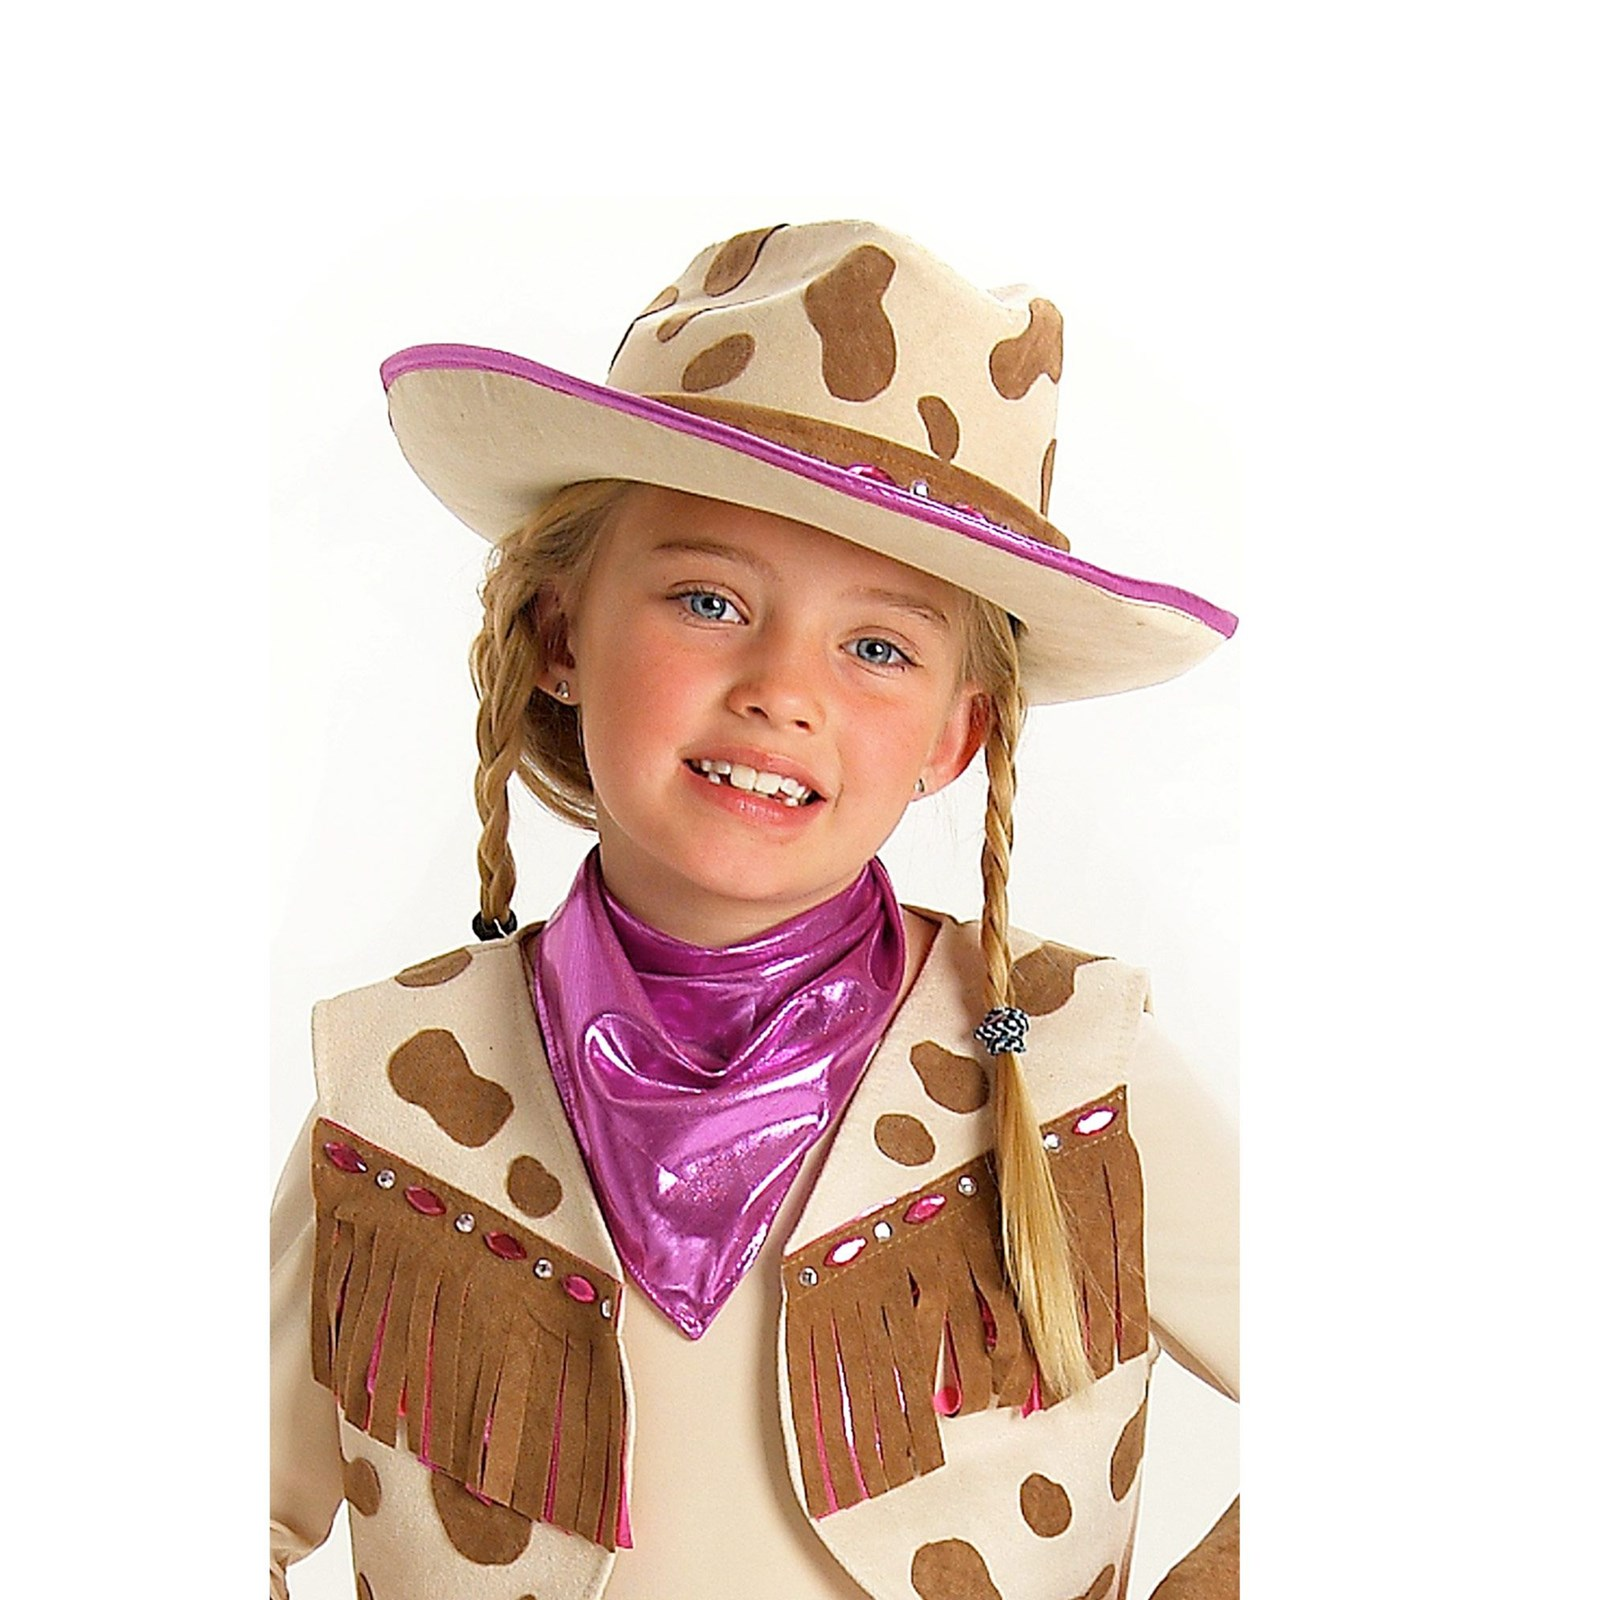 Rhinestone Cowgirl Hat Halloween Costume Accessory